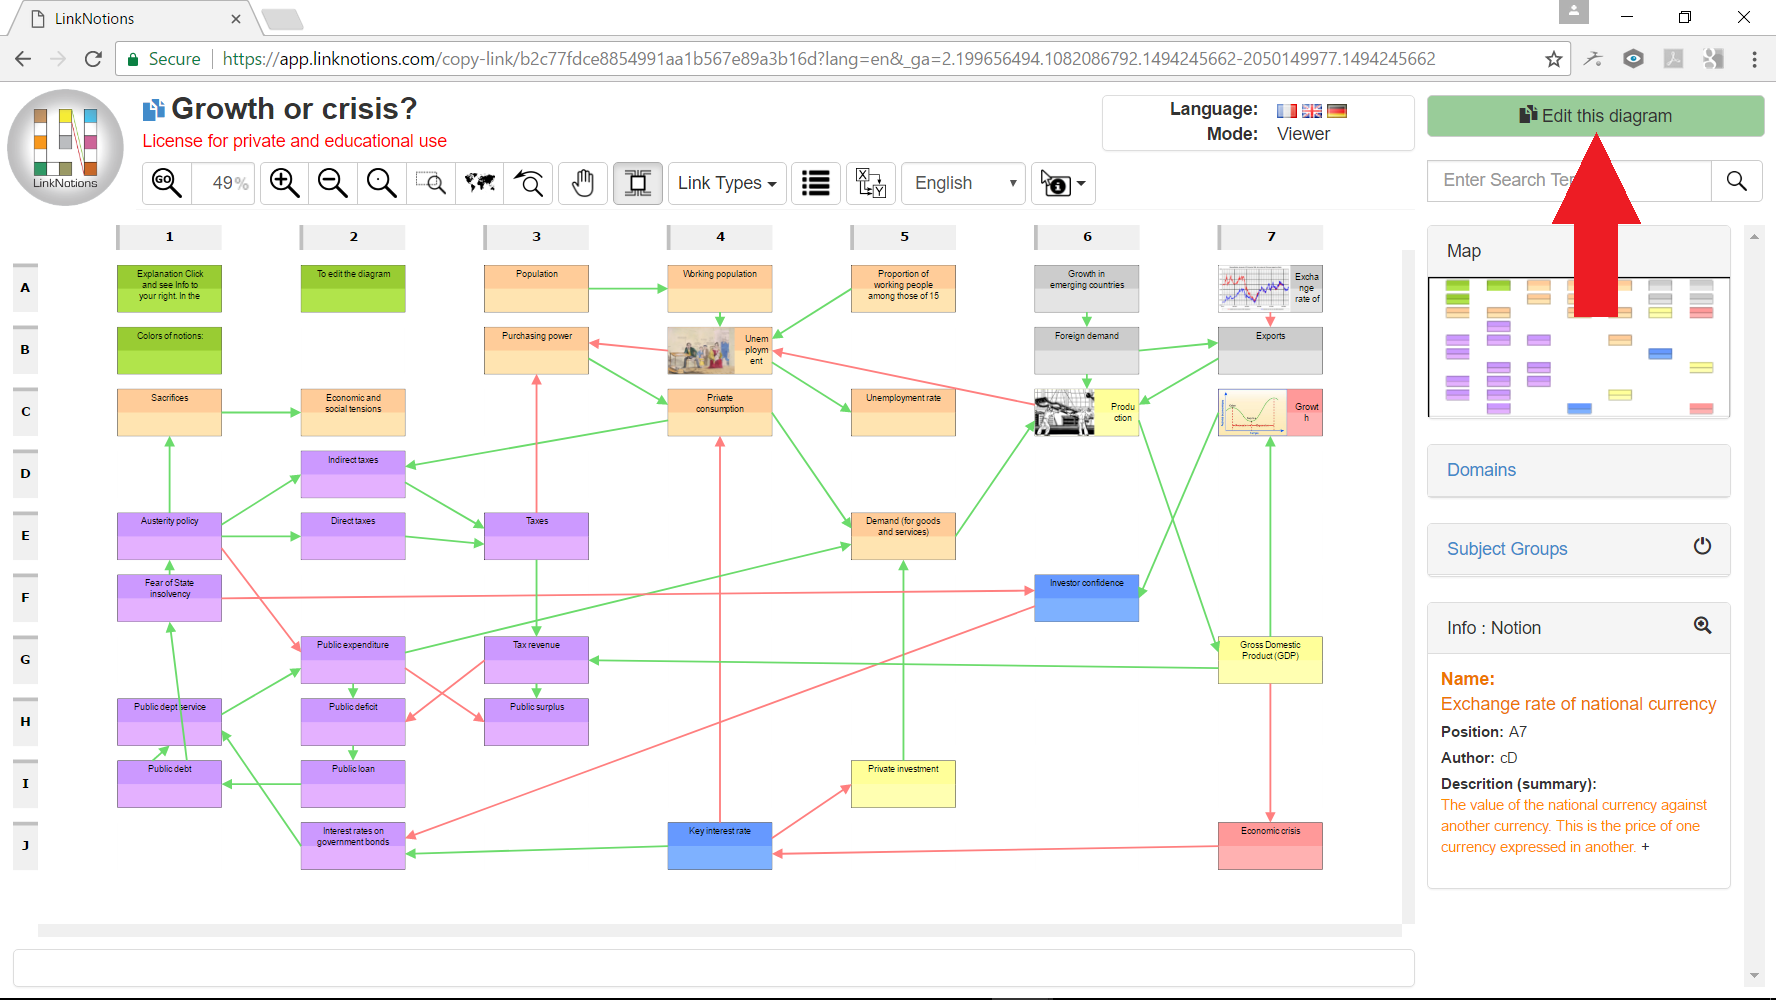 edit a diagram in your LinkNotions account